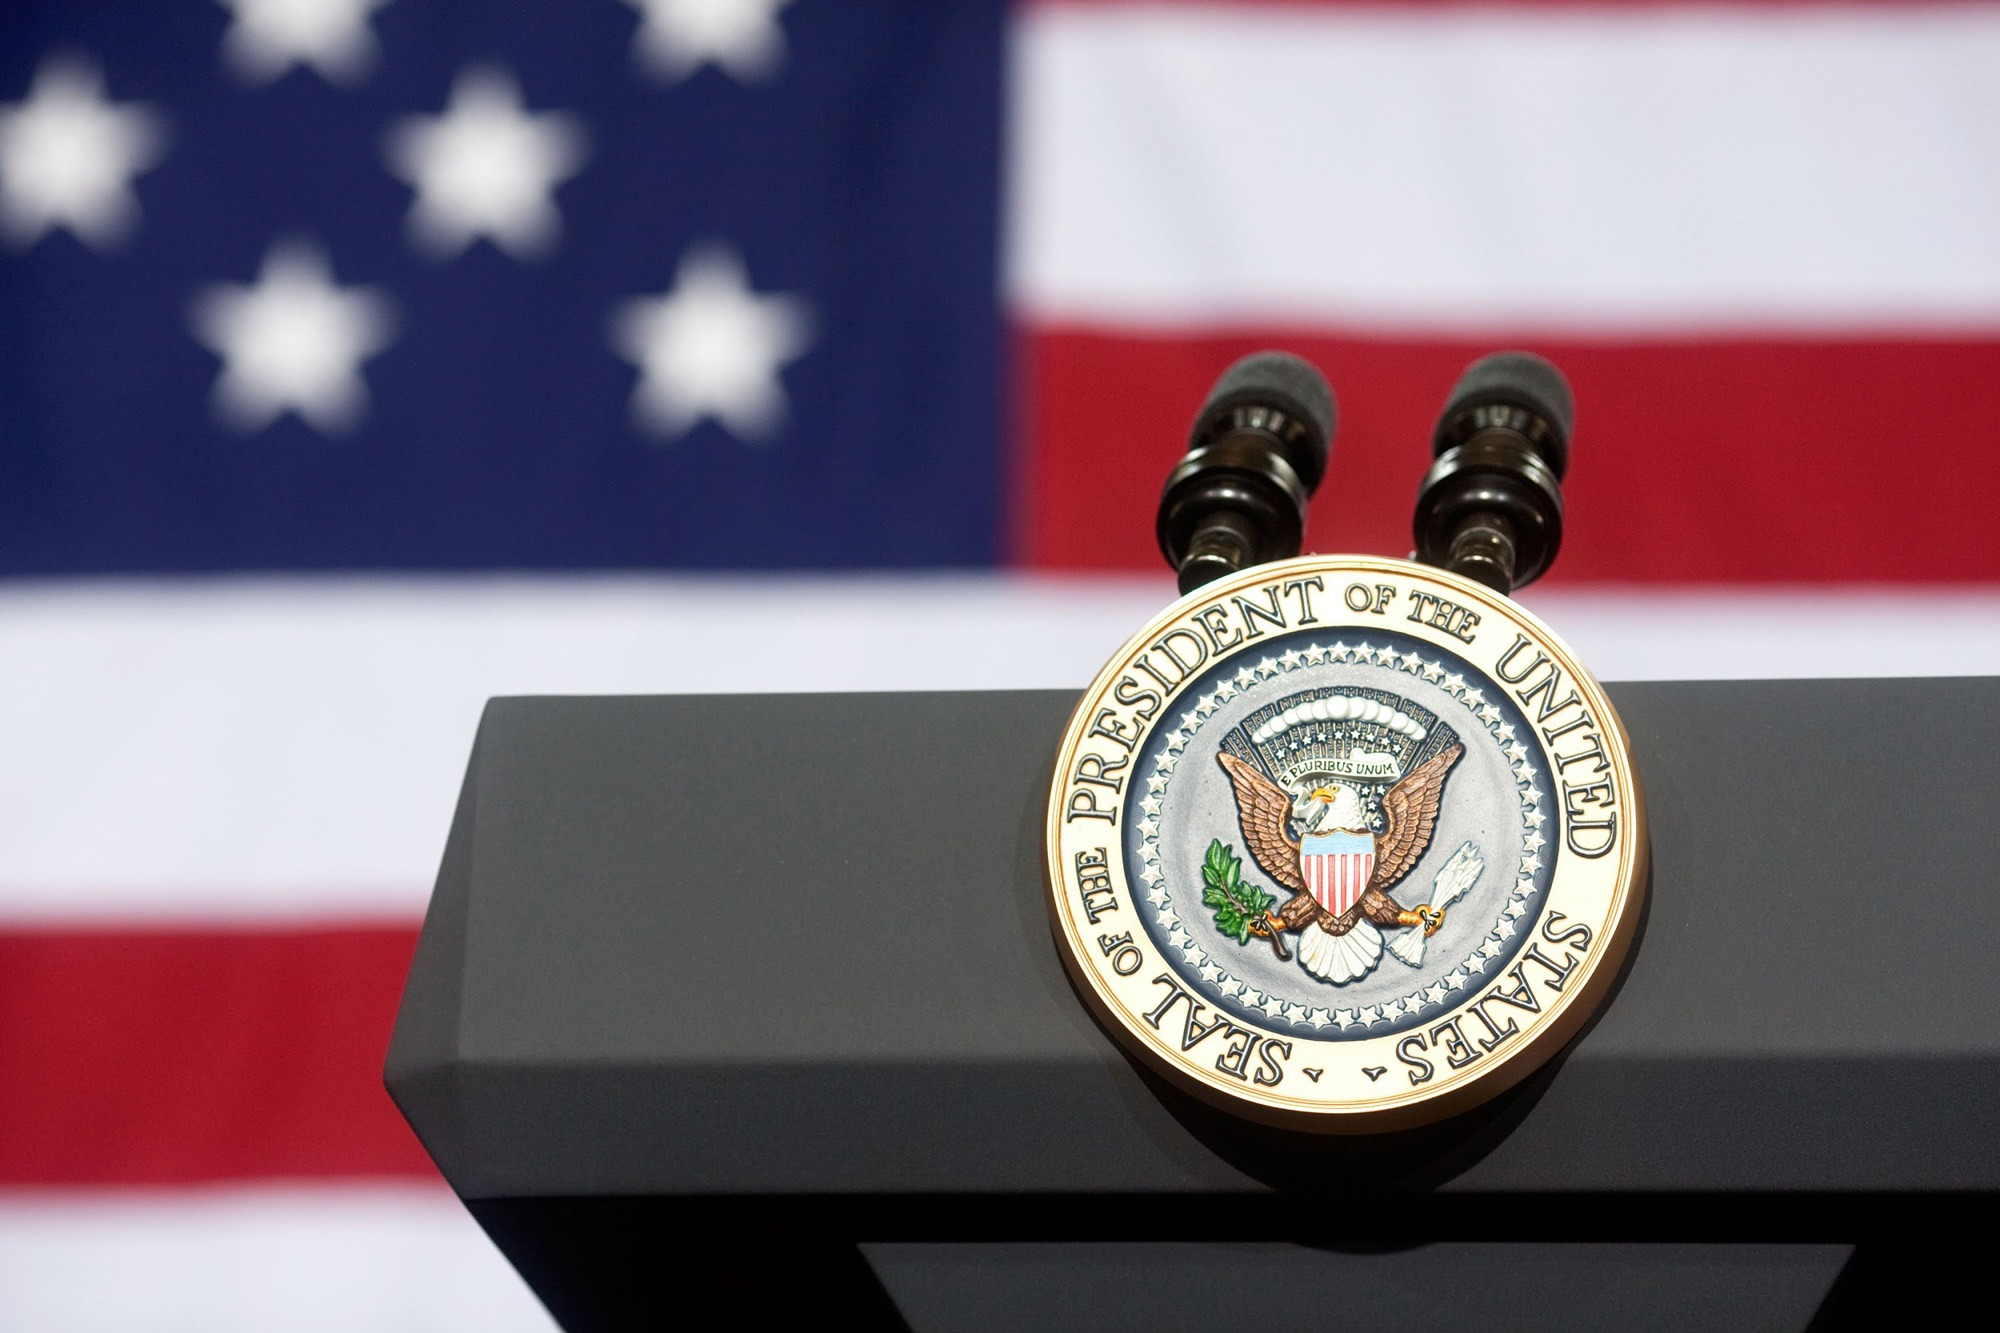 Presidential-Seal-Podium-WEB